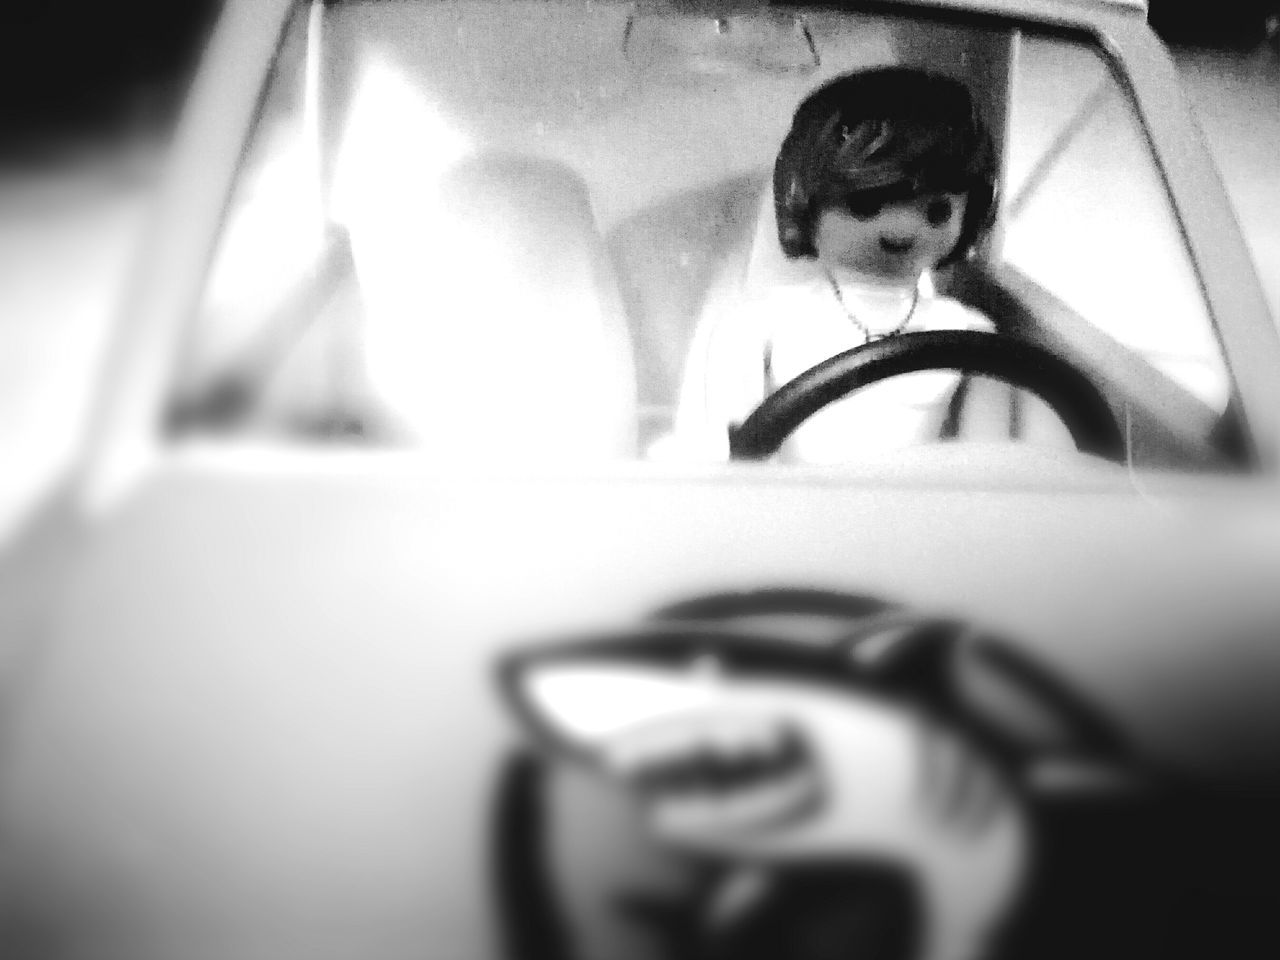 car, real people, car interior, childhood, transportation, mode of transport, land vehicle, one person, lifestyles, headshot, indoors, day, young women, young adult, close-up